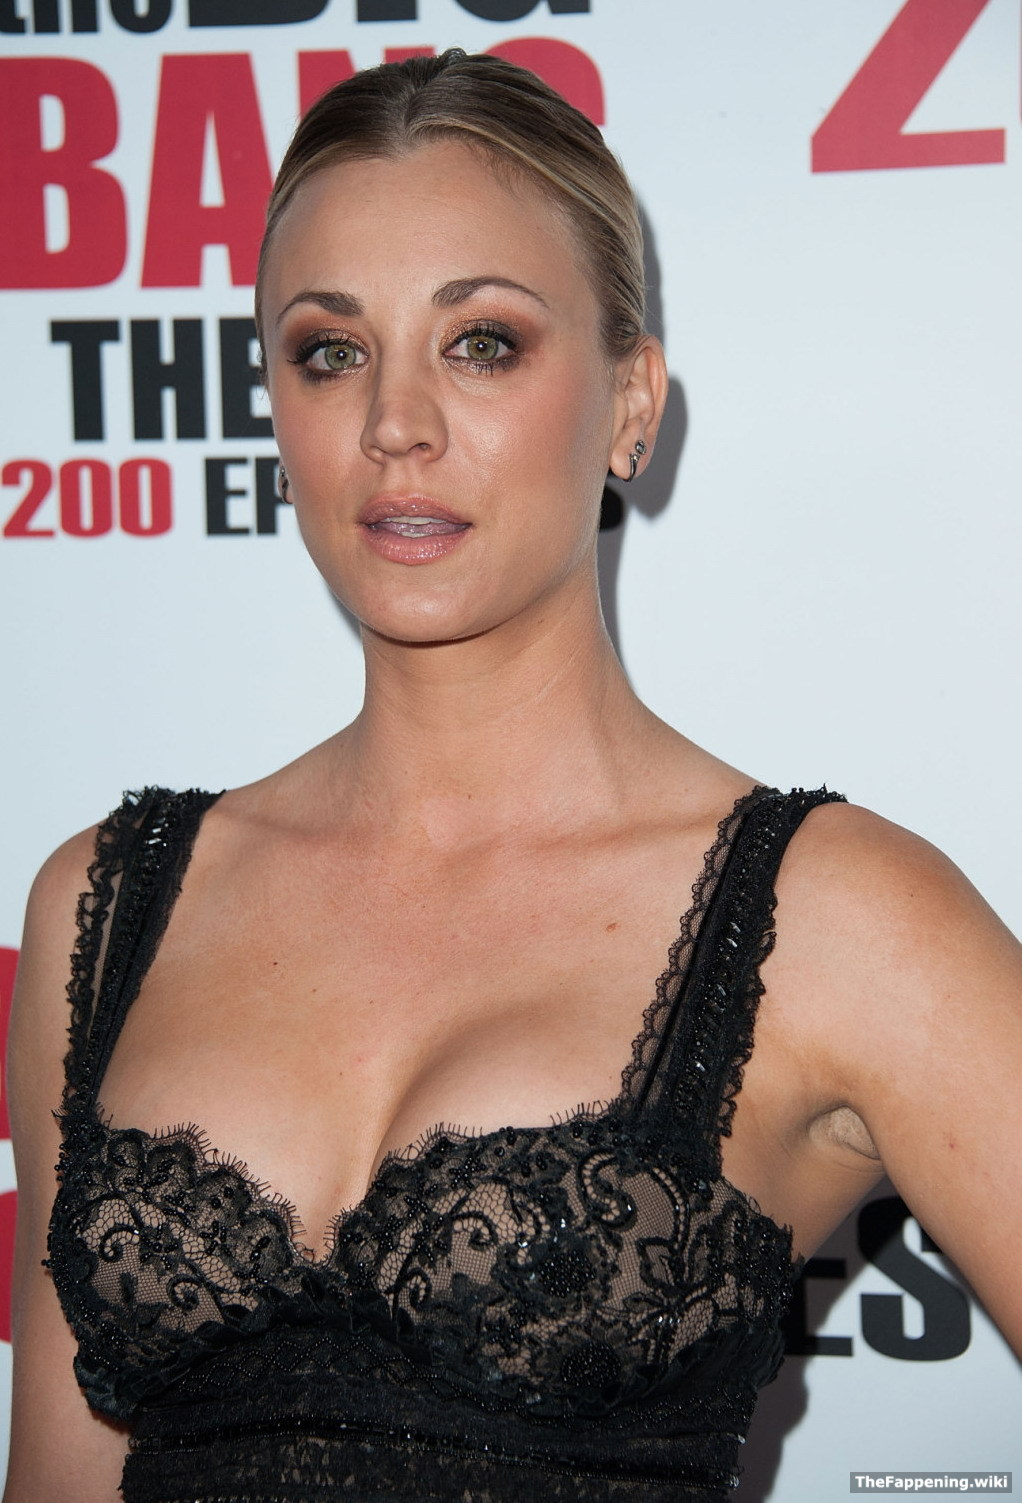 Kaley Cuoco Nude Pics & Vids - The Fappening